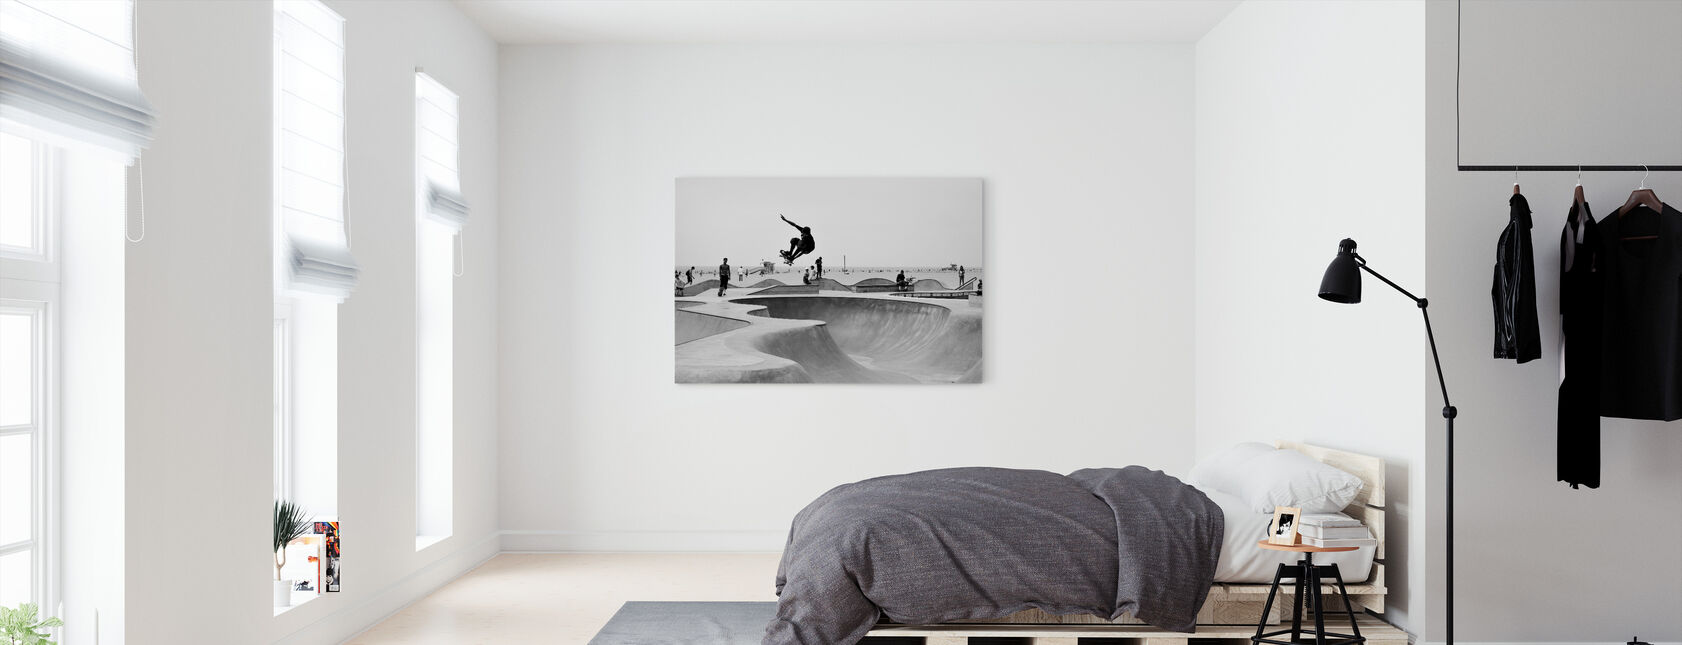 Skate Park - Canvas print - Bedroom